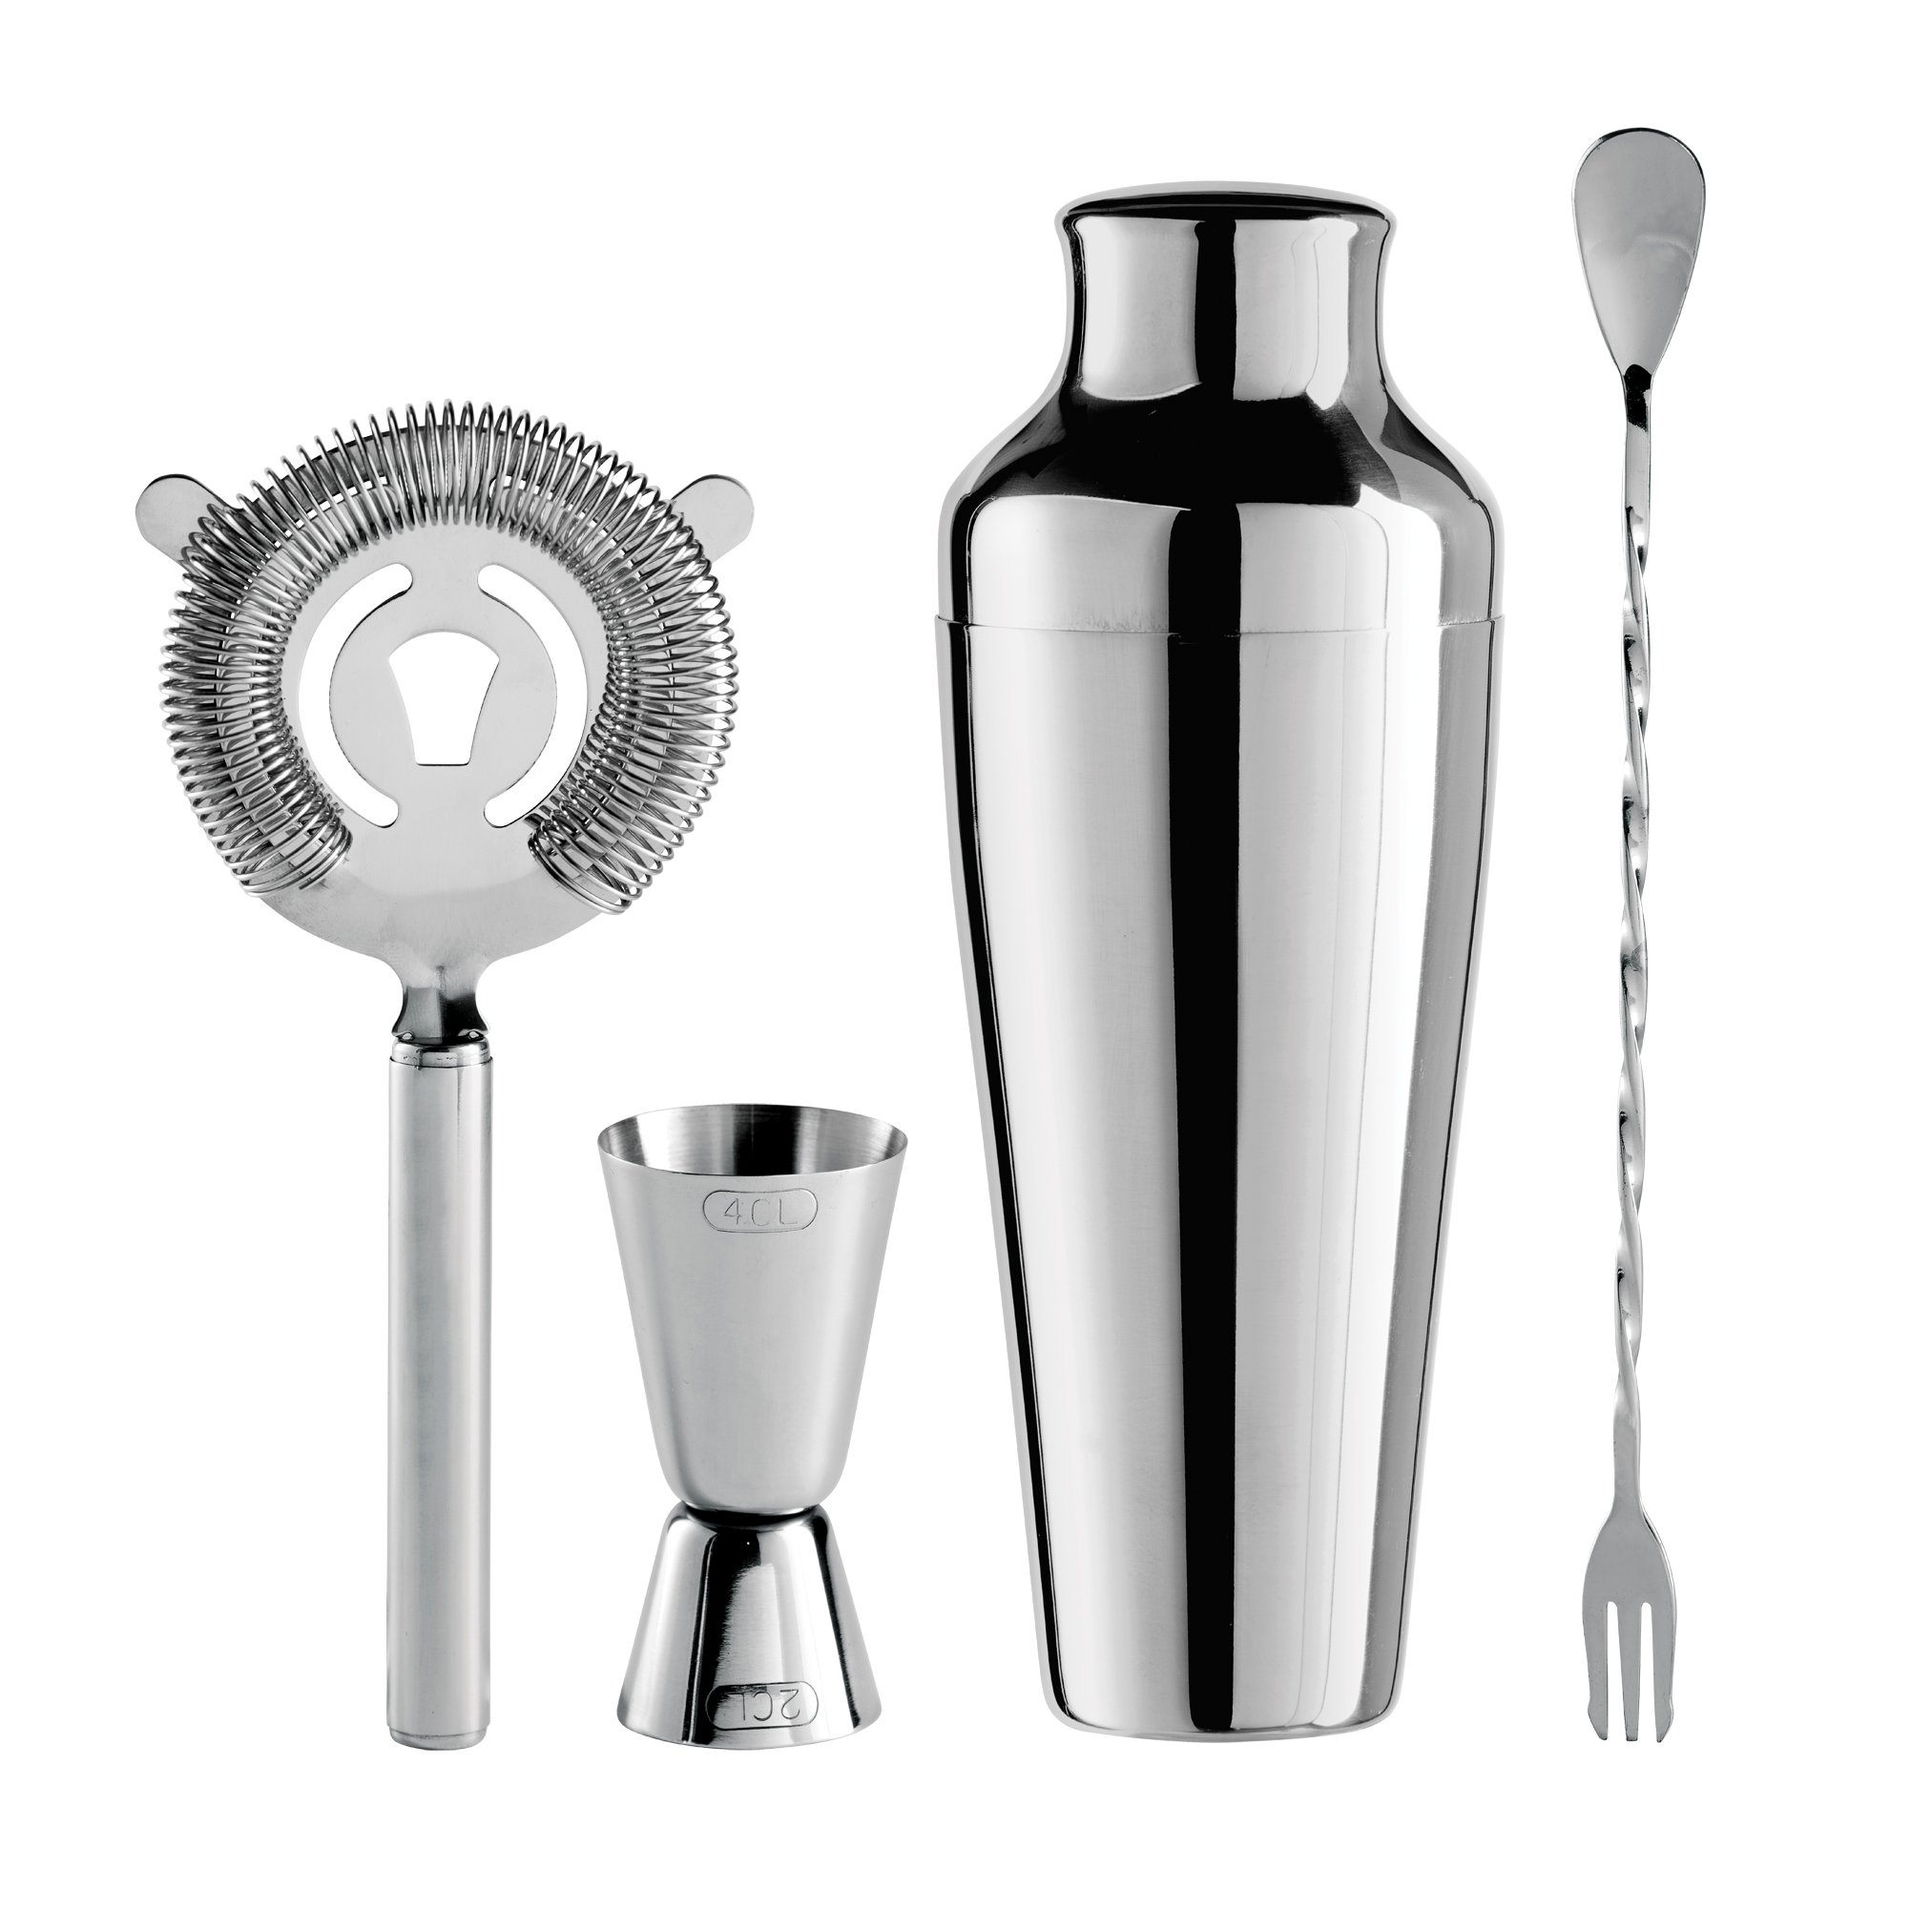 Oggi 4 Piece Bartender Accessories Set-Includes Stir-Stick, Cocktail Shaker, Double Jigger and Ice Strainer, Stainless